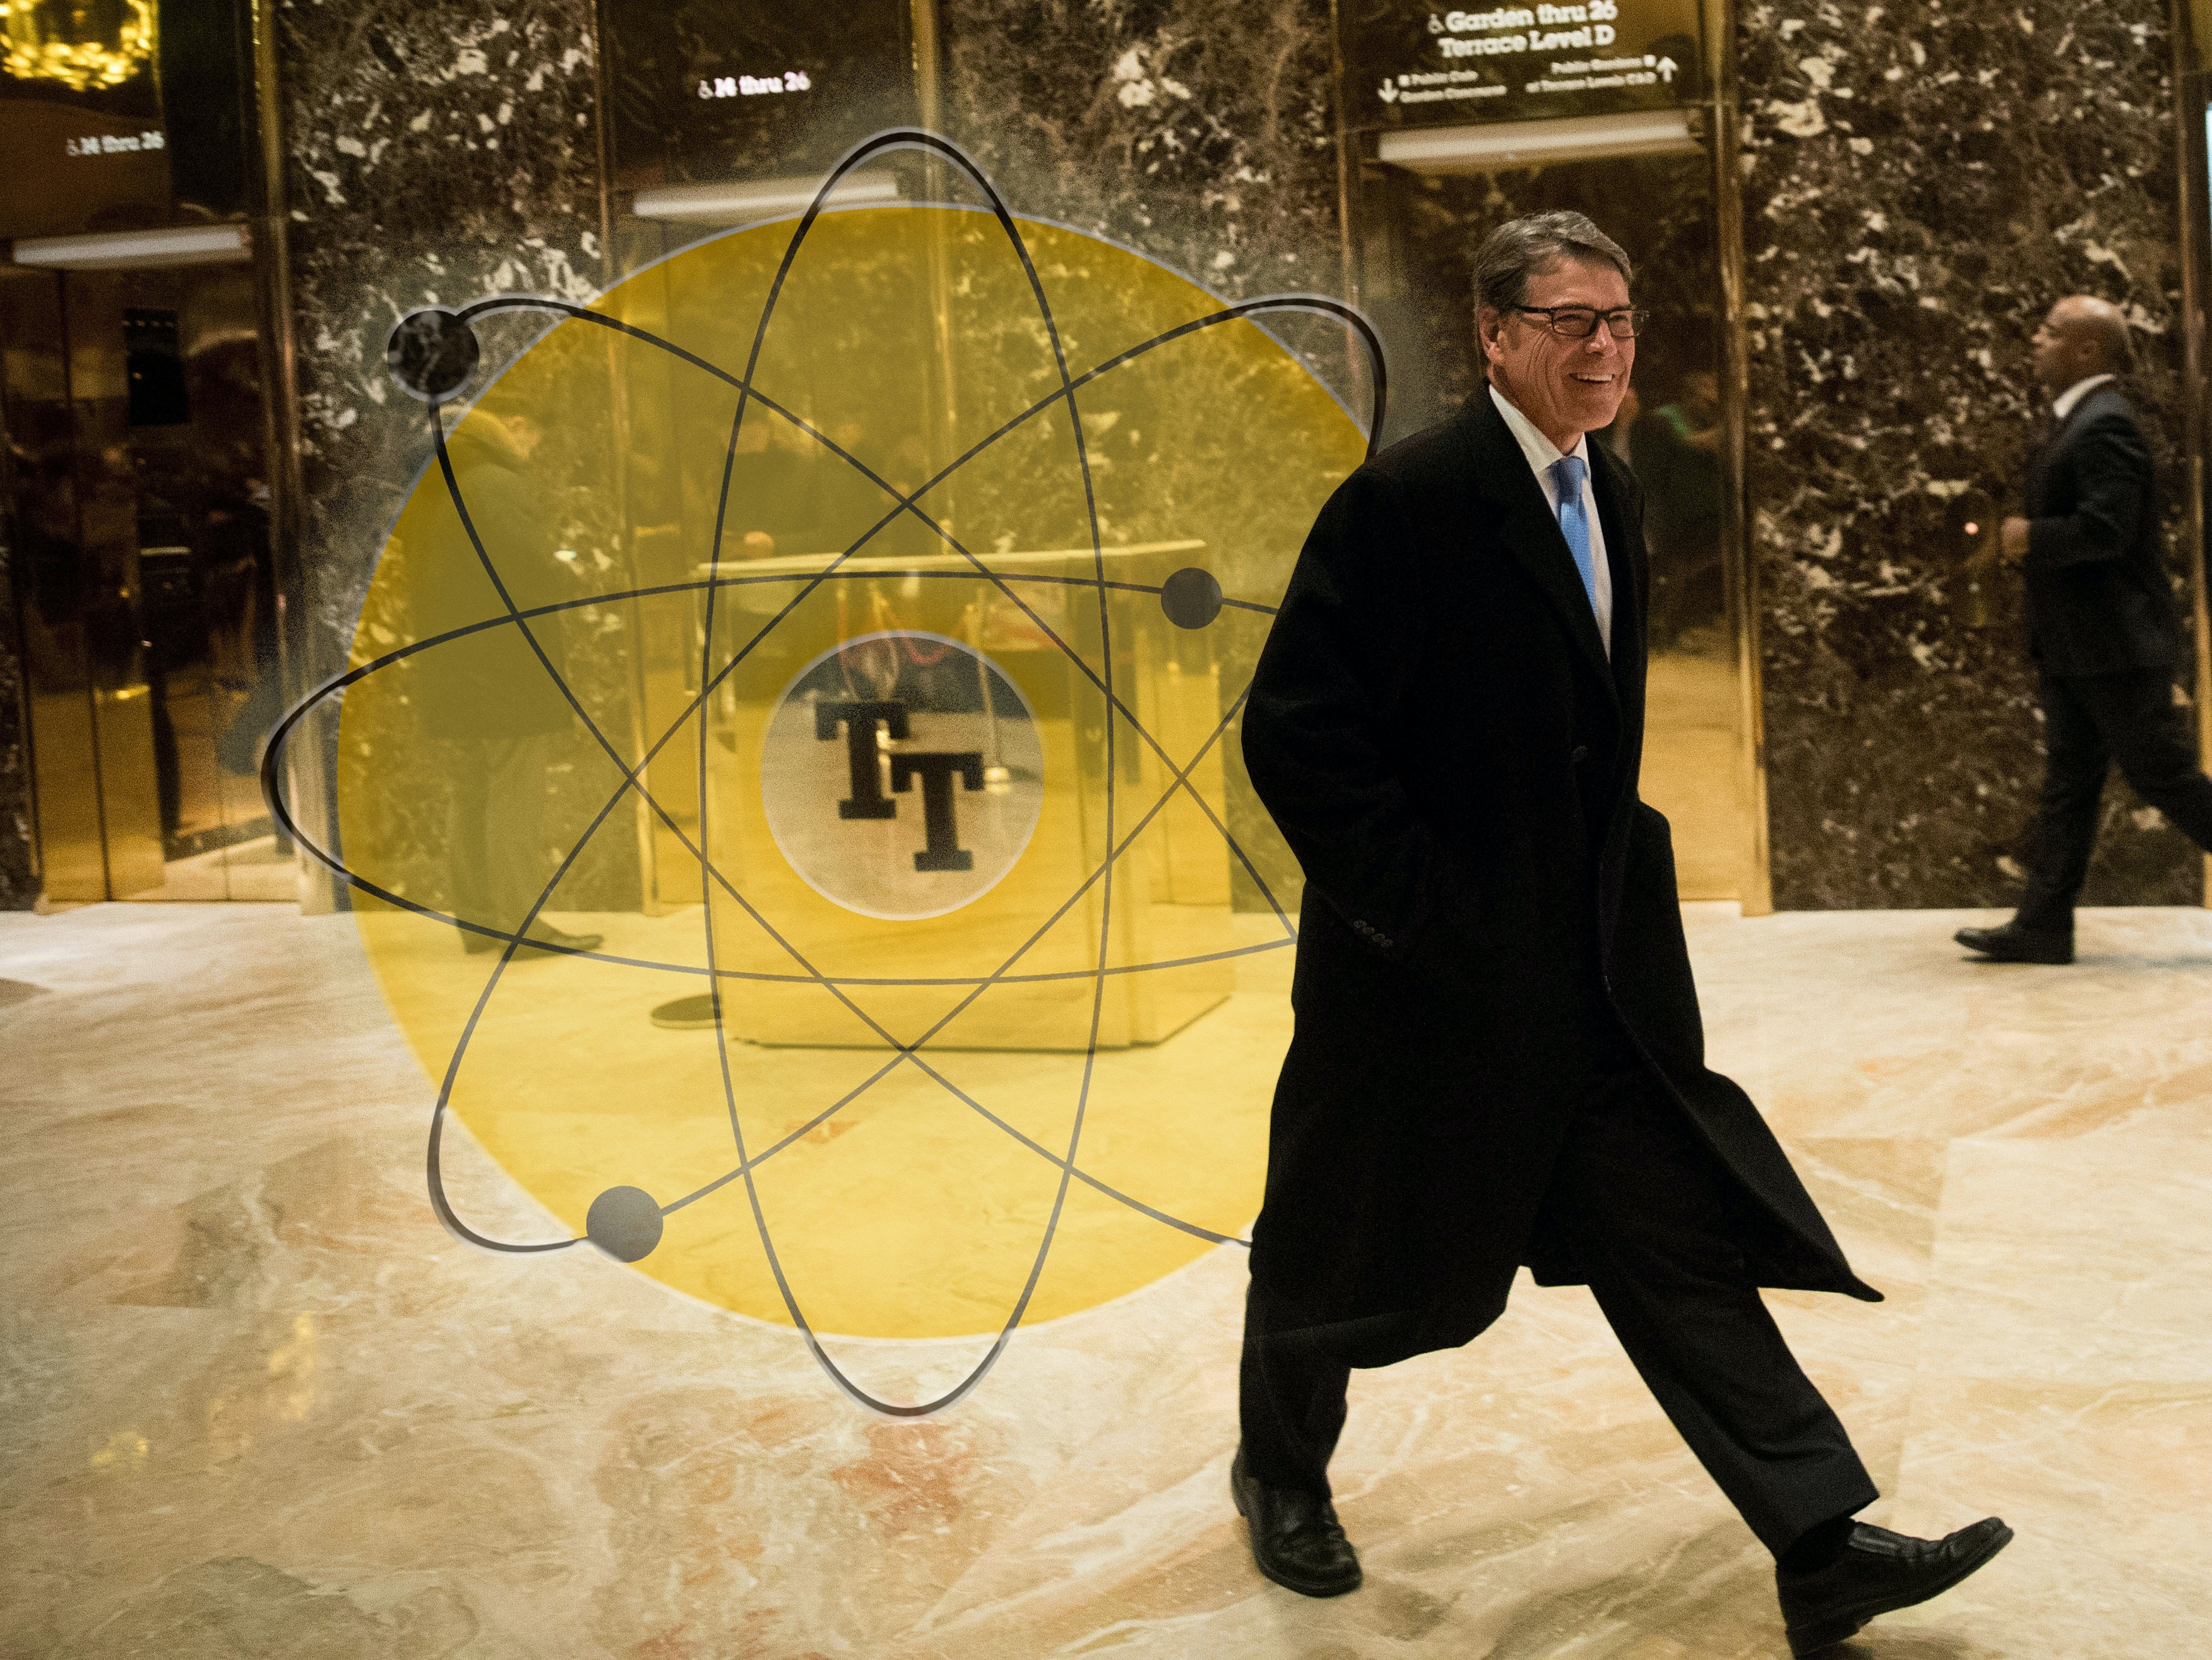 Rick Perry at the Department of Energy Could Go One of Two Ways